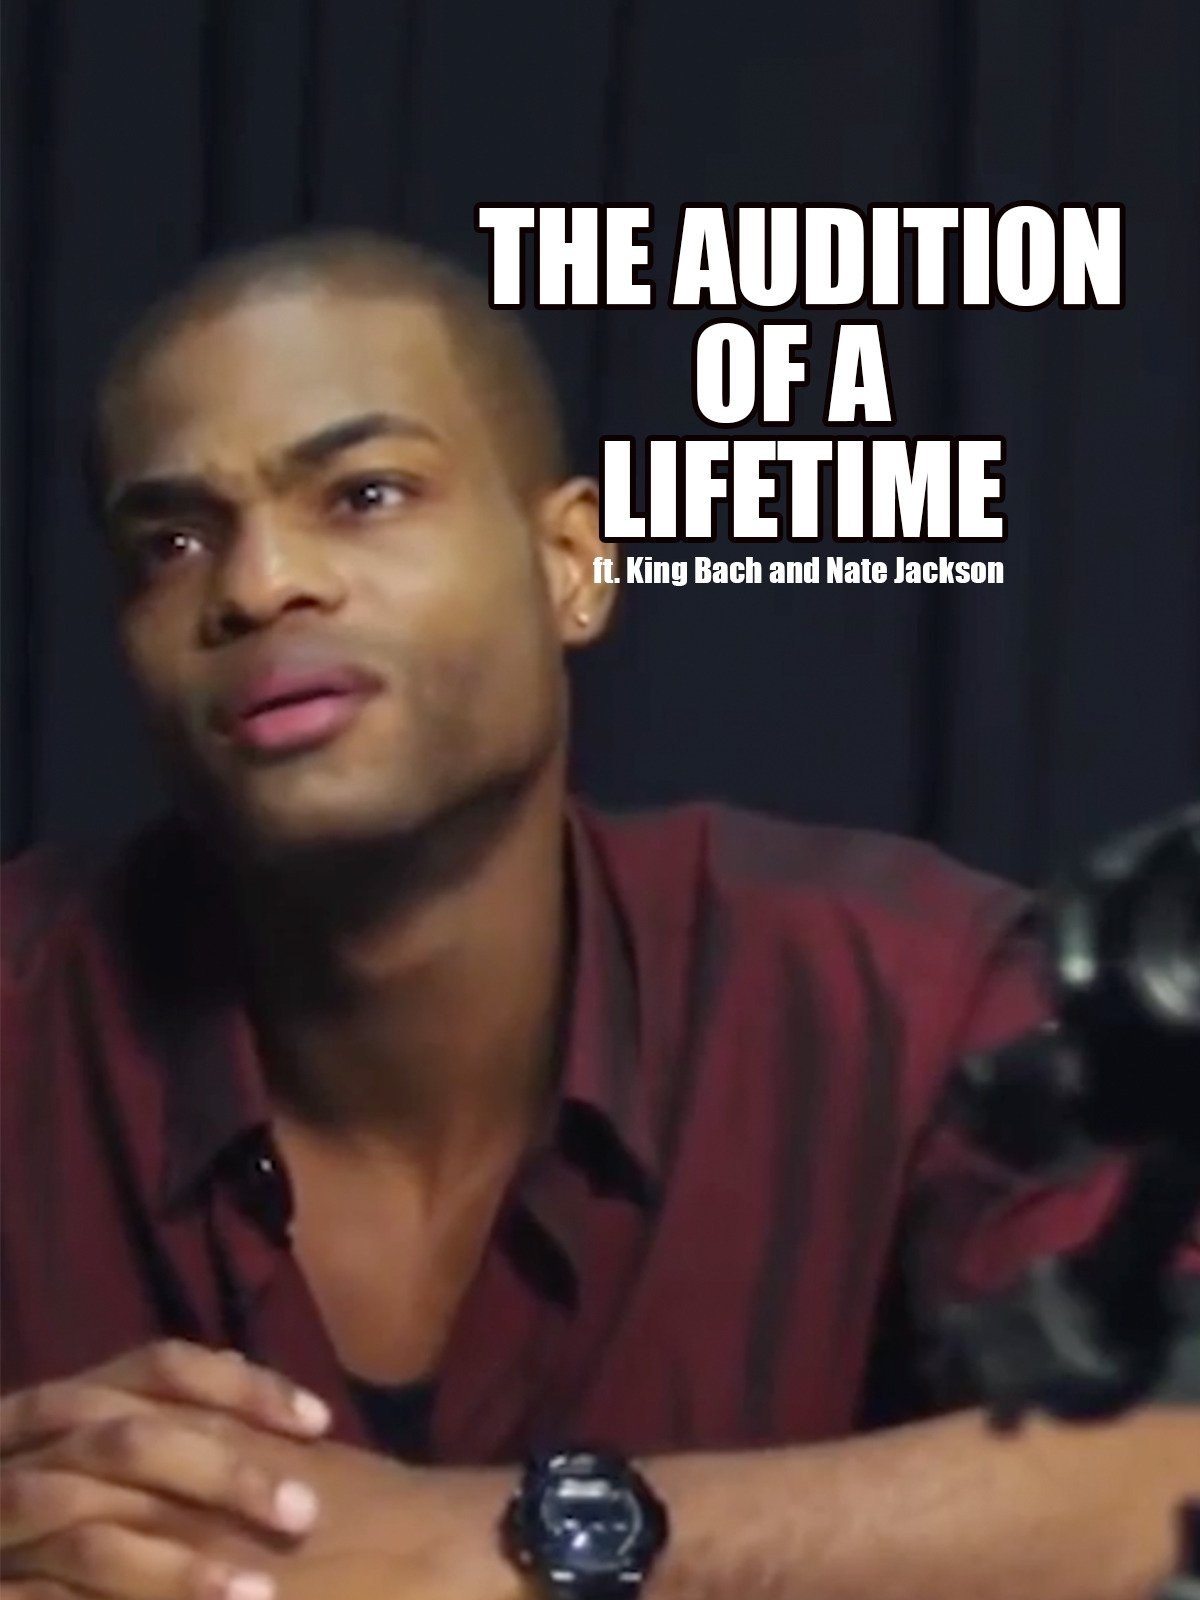 The Audition of a Lifetime ft. King Bach and Nate Jackson